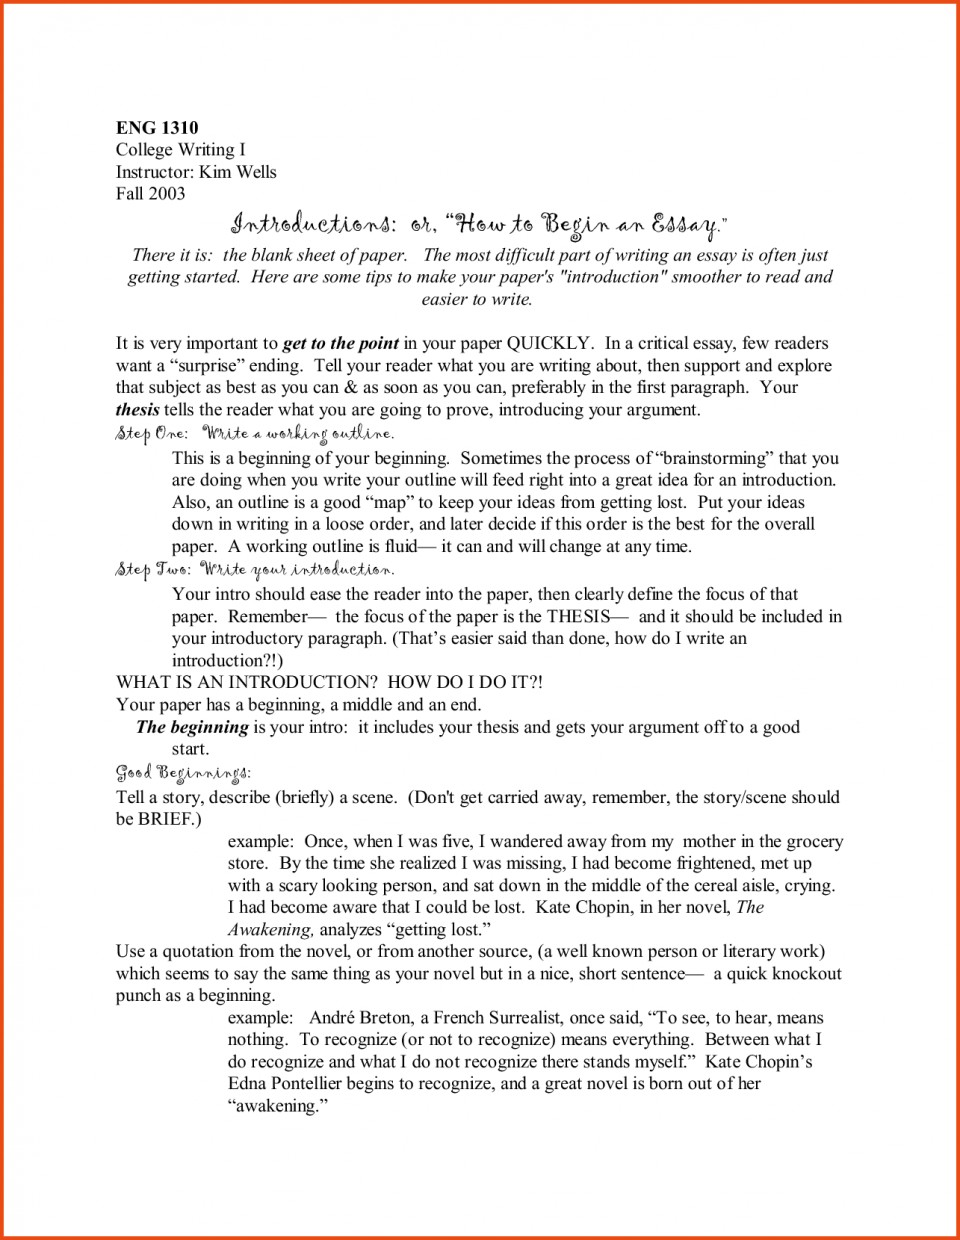 013 College Essays Applications Of Essay Consultant L How To Start An Amazing Analysis On A Book Ways With Question About Two Books 960